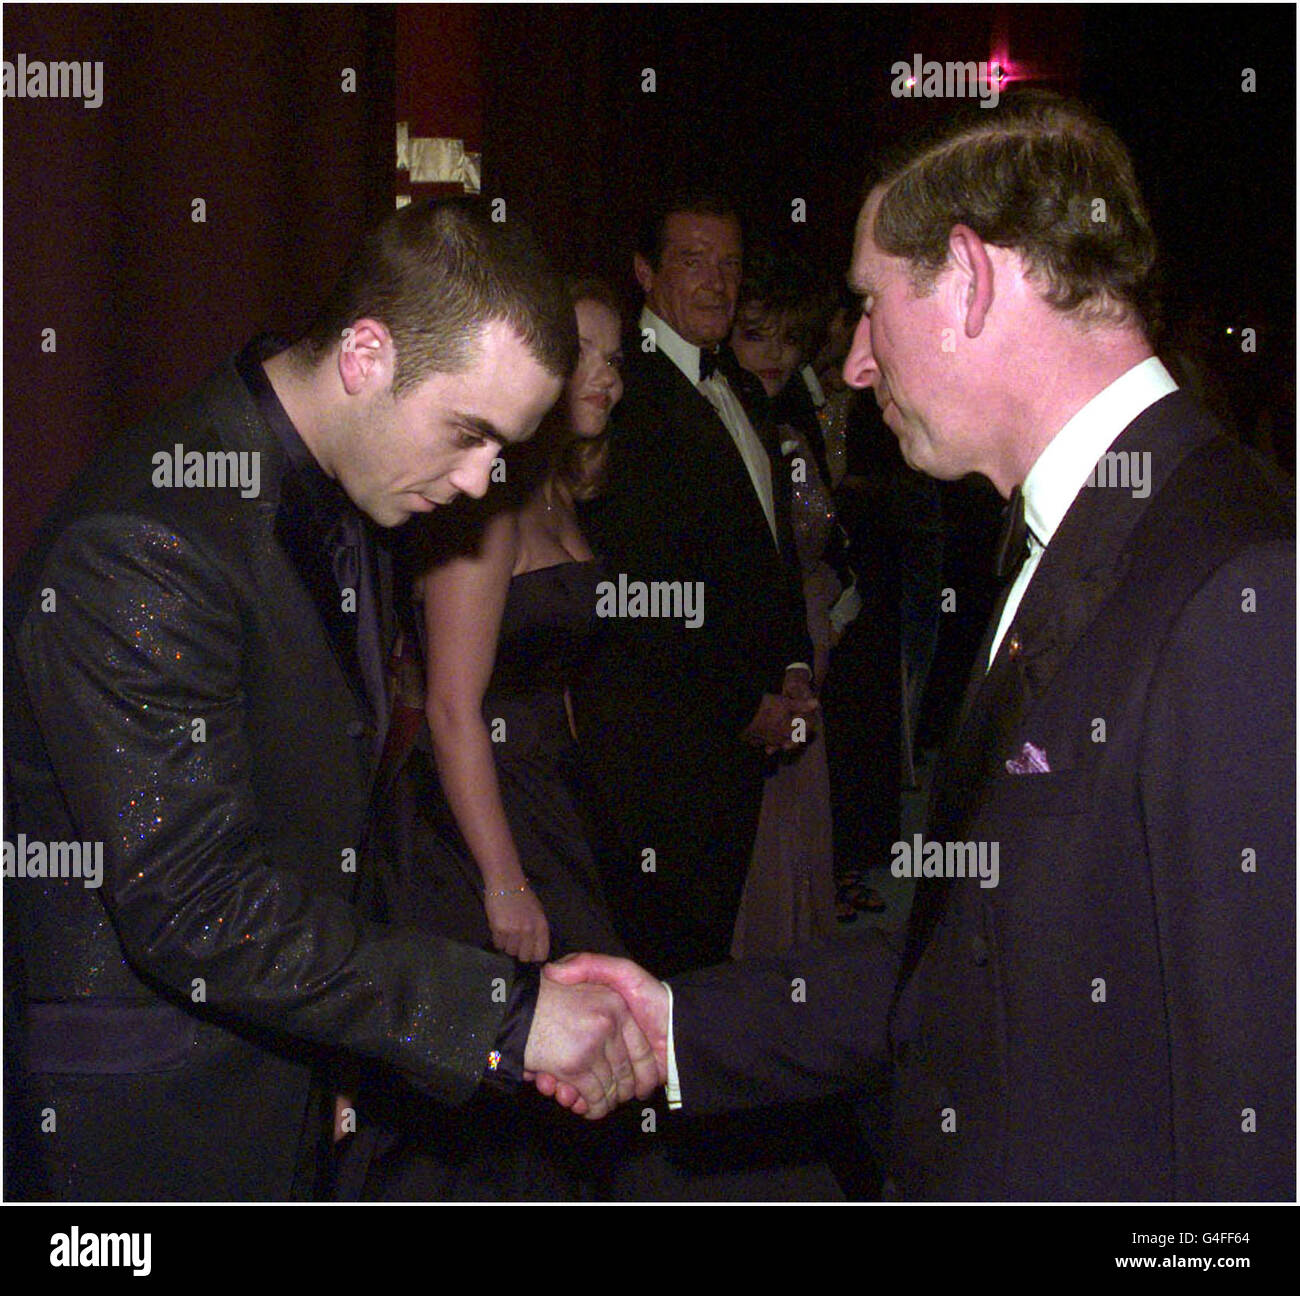 PRINCE CHARLES 50TH BIRTHDAY/Robbie Williams Stock Photo